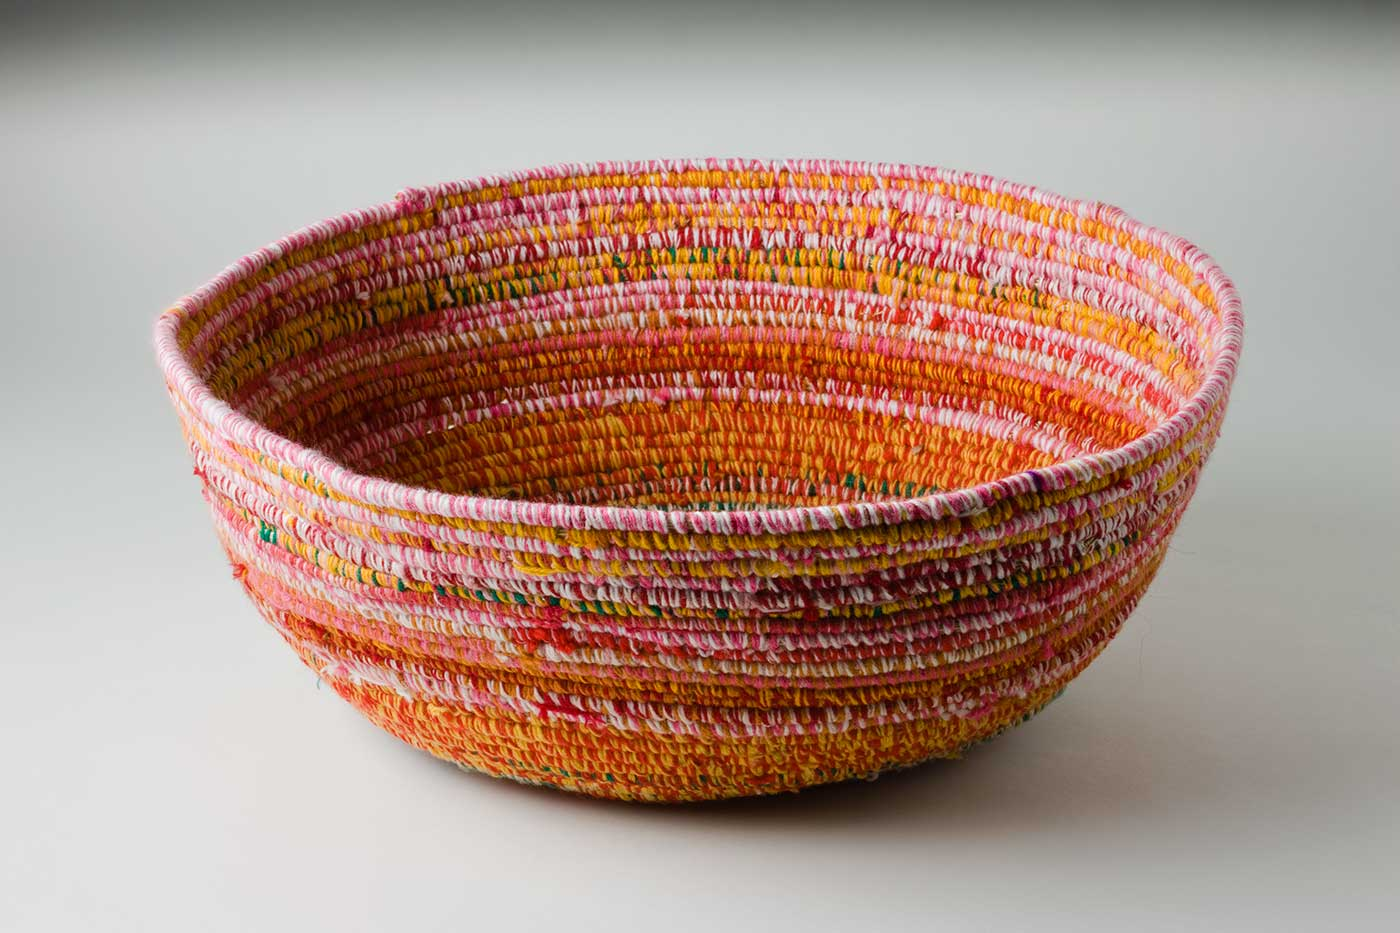 An oval coiled multicoloured yarn and plant fibre basket. The plant fibre in the centre of the basket is covered by brown-blue yarn, followed by horizontal alternate yarn coverings over the fibre. The yarn colours are green-yellow, red-yellow, red-white, red-green, green-white, pink-white, red-brown, pink-brown, and yellow pink. The top plant fibre is covered by pink-white yarn. - click to view larger image